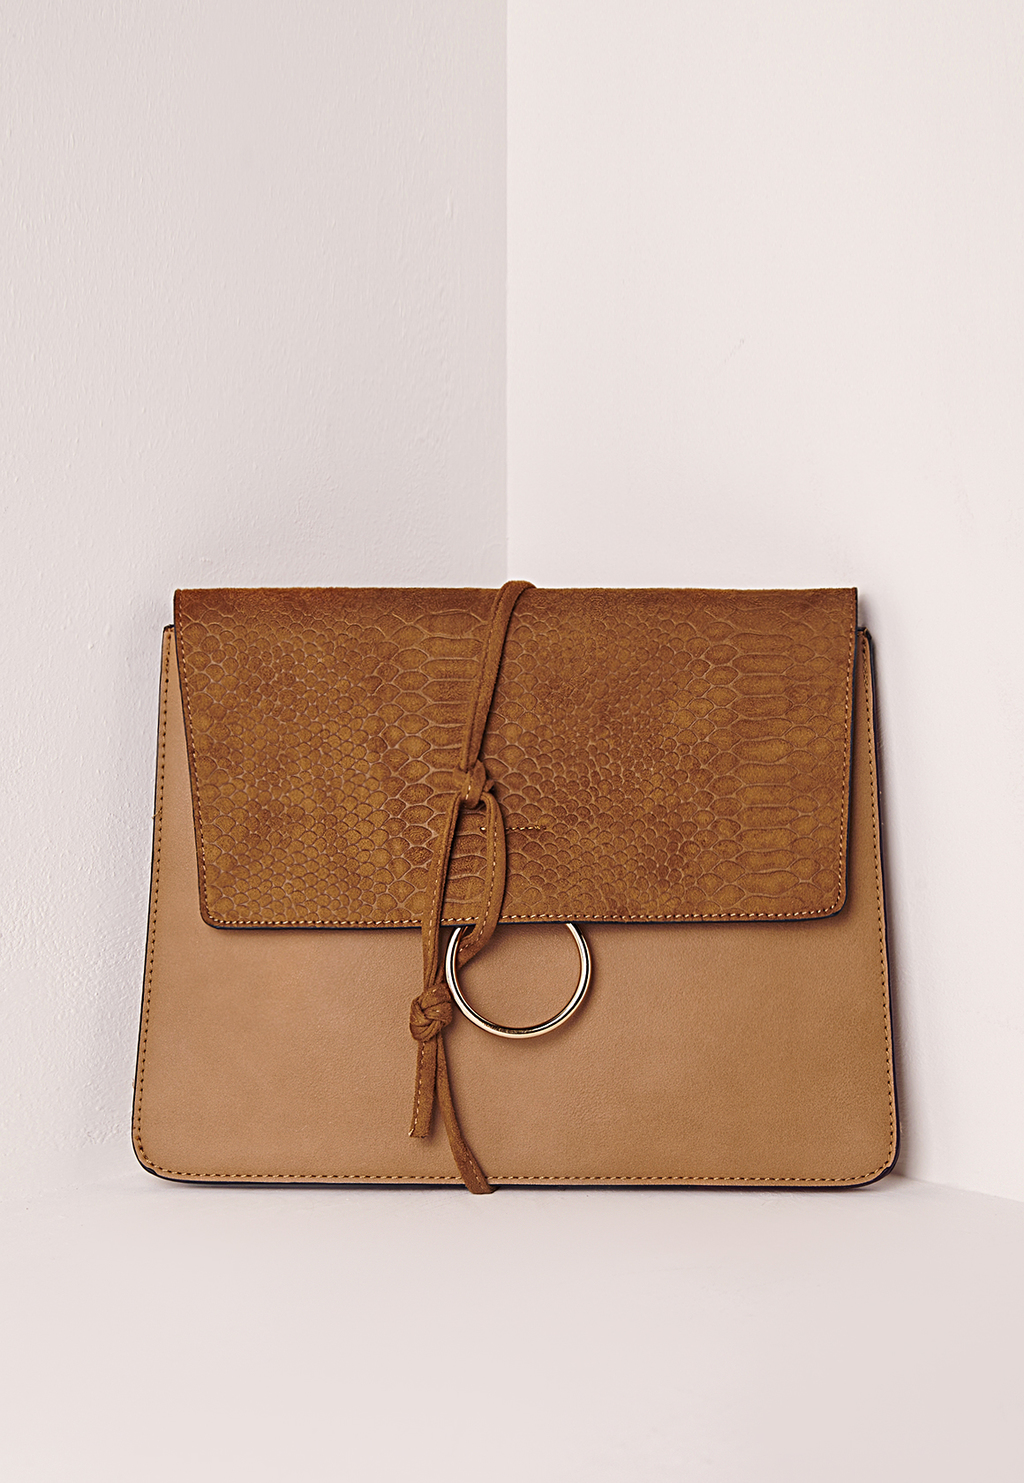 Thread Through Clutch Bag Tan, Brown - predominant colour: camel; occasions: occasion; type of pattern: standard; style: clutch; length: hand carry; size: standard; material: faux leather; pattern: plain; finish: plain; season: s/s 2016; wardrobe: event